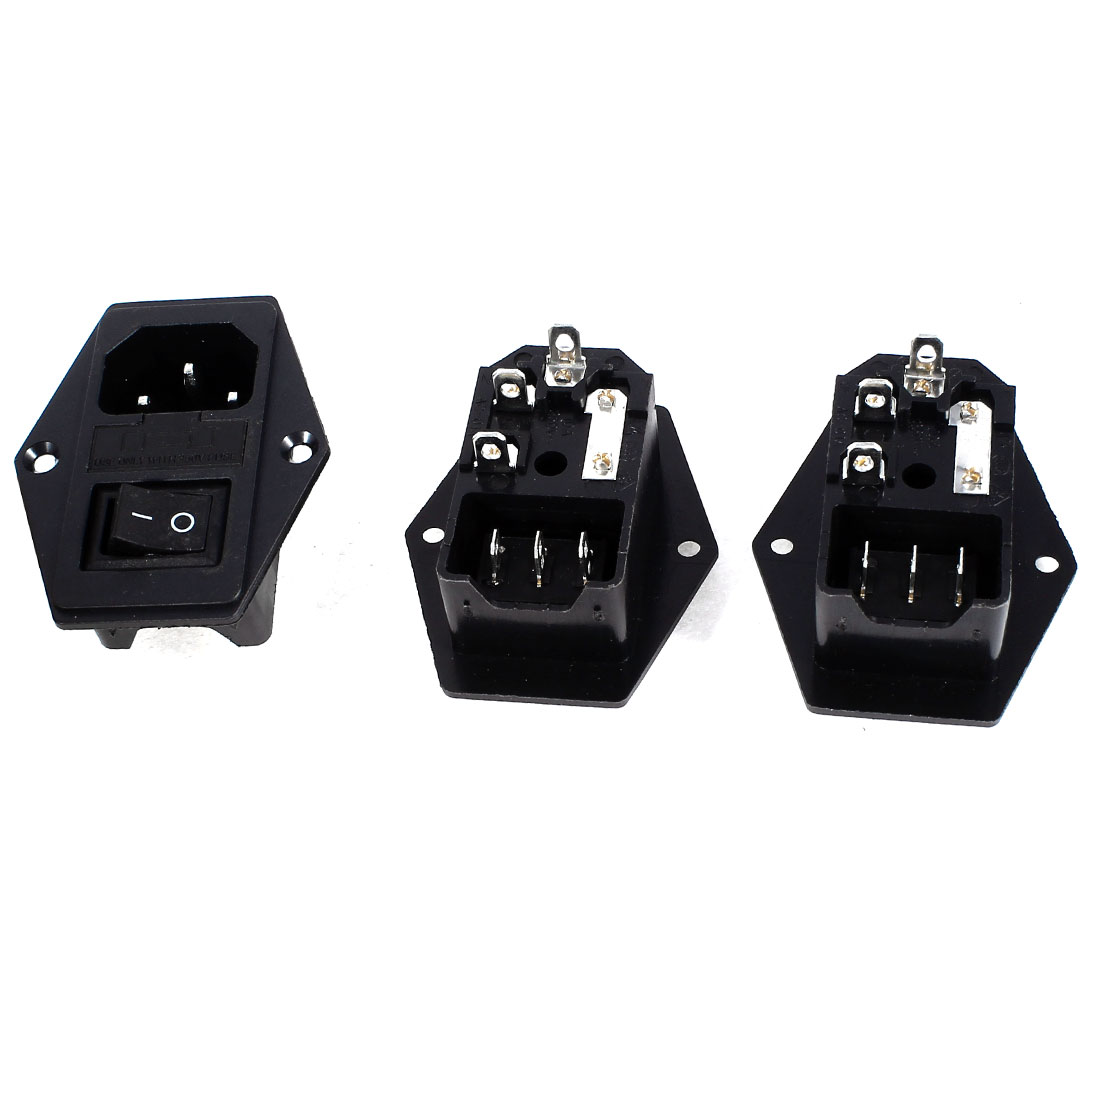 3 Pcs Panel Mount 3Poles SPDT Rocker Switch IEC320 C14 Inlet Power Socket w Fuse AC 250V 5A